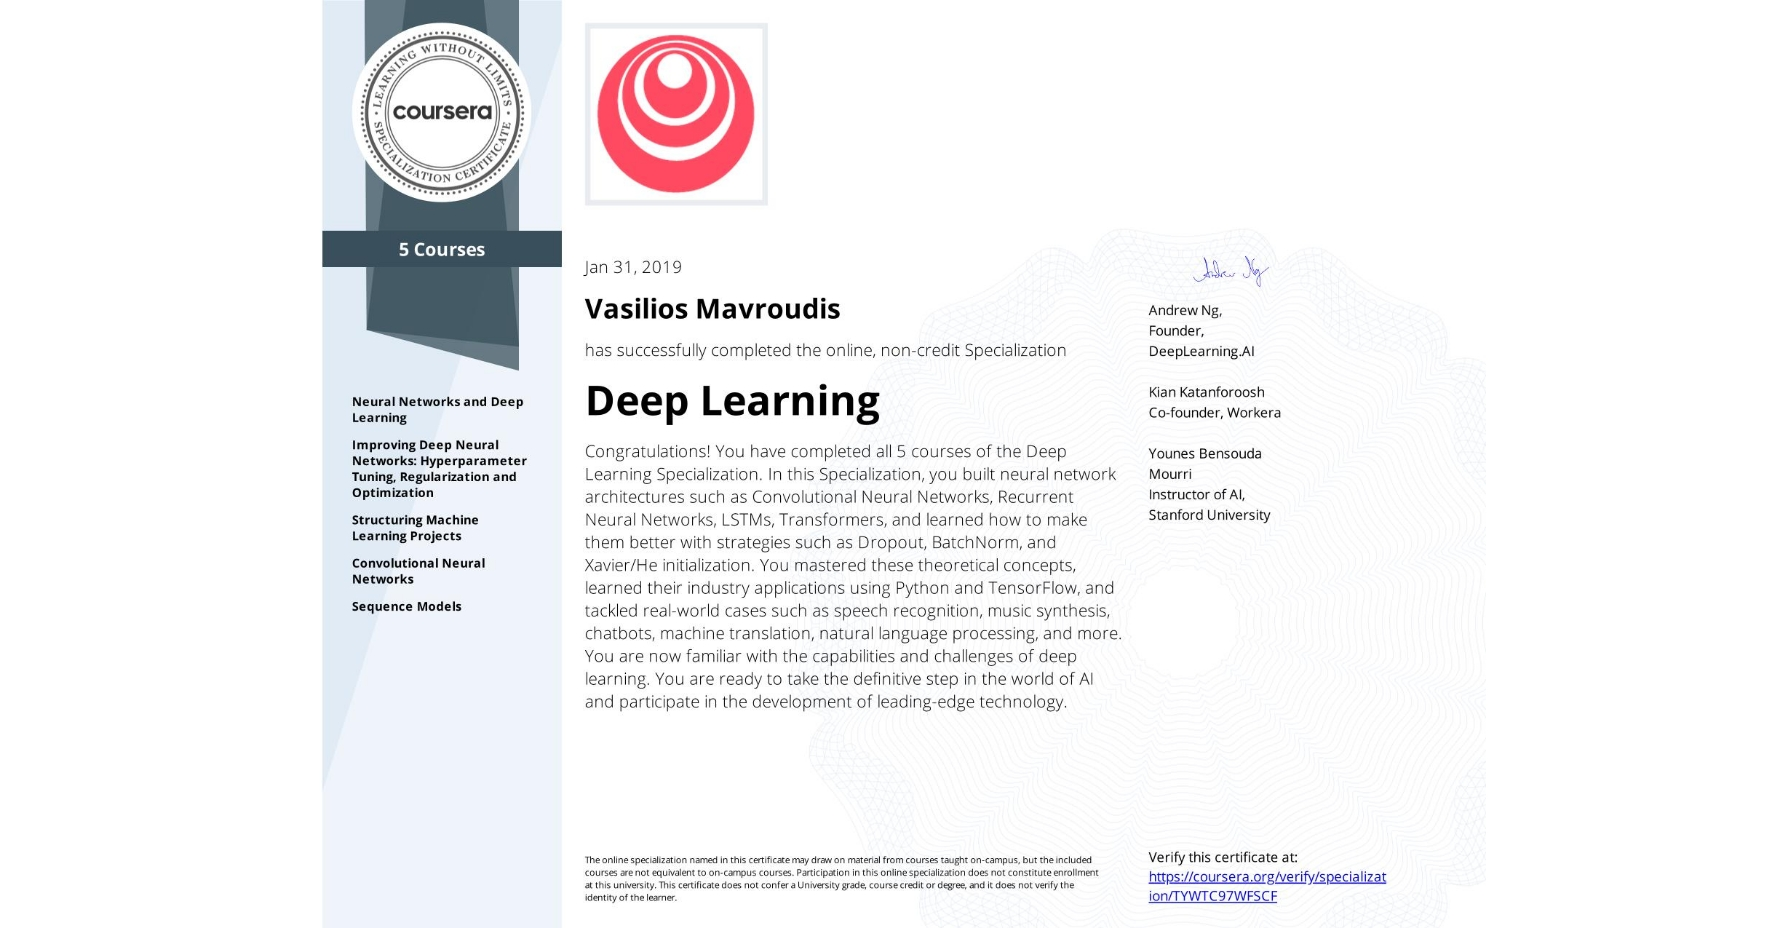 View certificate for Vasilios Mavroudis, Deep Learning, offered through Coursera. Congratulations! You have completed all 5 courses of the Deep Learning Specialization.  In this Specialization, you built neural network architectures such as Convolutional Neural Networks, Recurrent Neural Networks, LSTMs, Transformers, and learned how to make them better with strategies such as Dropout, BatchNorm, and Xavier/He initialization. You mastered these theoretical concepts, learned their industry applications using Python and TensorFlow, and tackled real-world cases such as speech recognition, music synthesis, chatbots, machine translation, natural language processing, and more.  You are now familiar with the capabilities and challenges of deep learning. You are ready to take the definitive step in the world of AI and participate in the development of leading-edge technology.